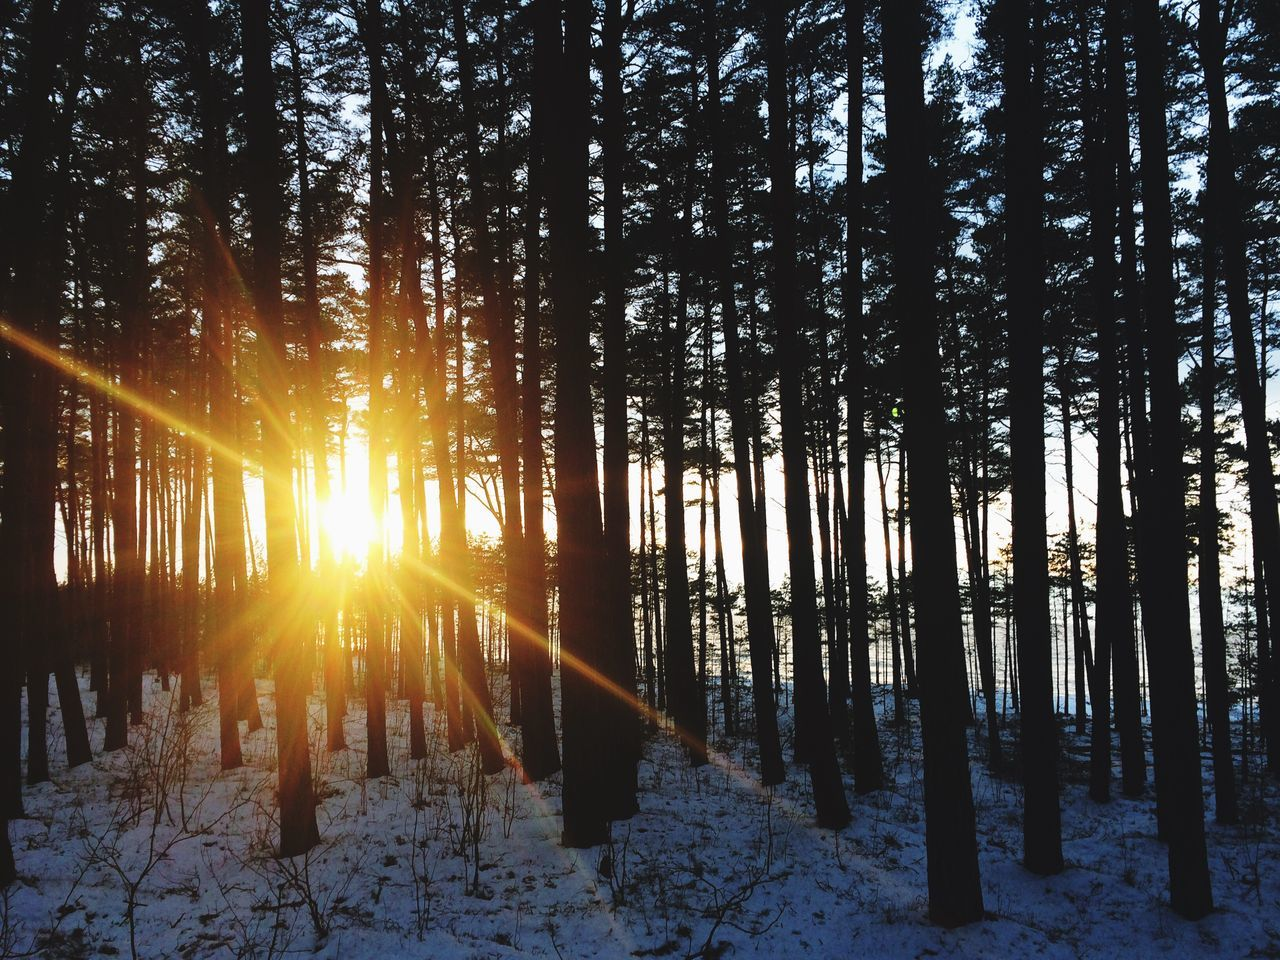 Tree Snow Nature Beauty In Nature Winter Sunlight Sun Cold Temperature Sunset Growth Scenics Outdoors Forest Non-urban Scene Sky Sunbeam Tranquility Landscape No People